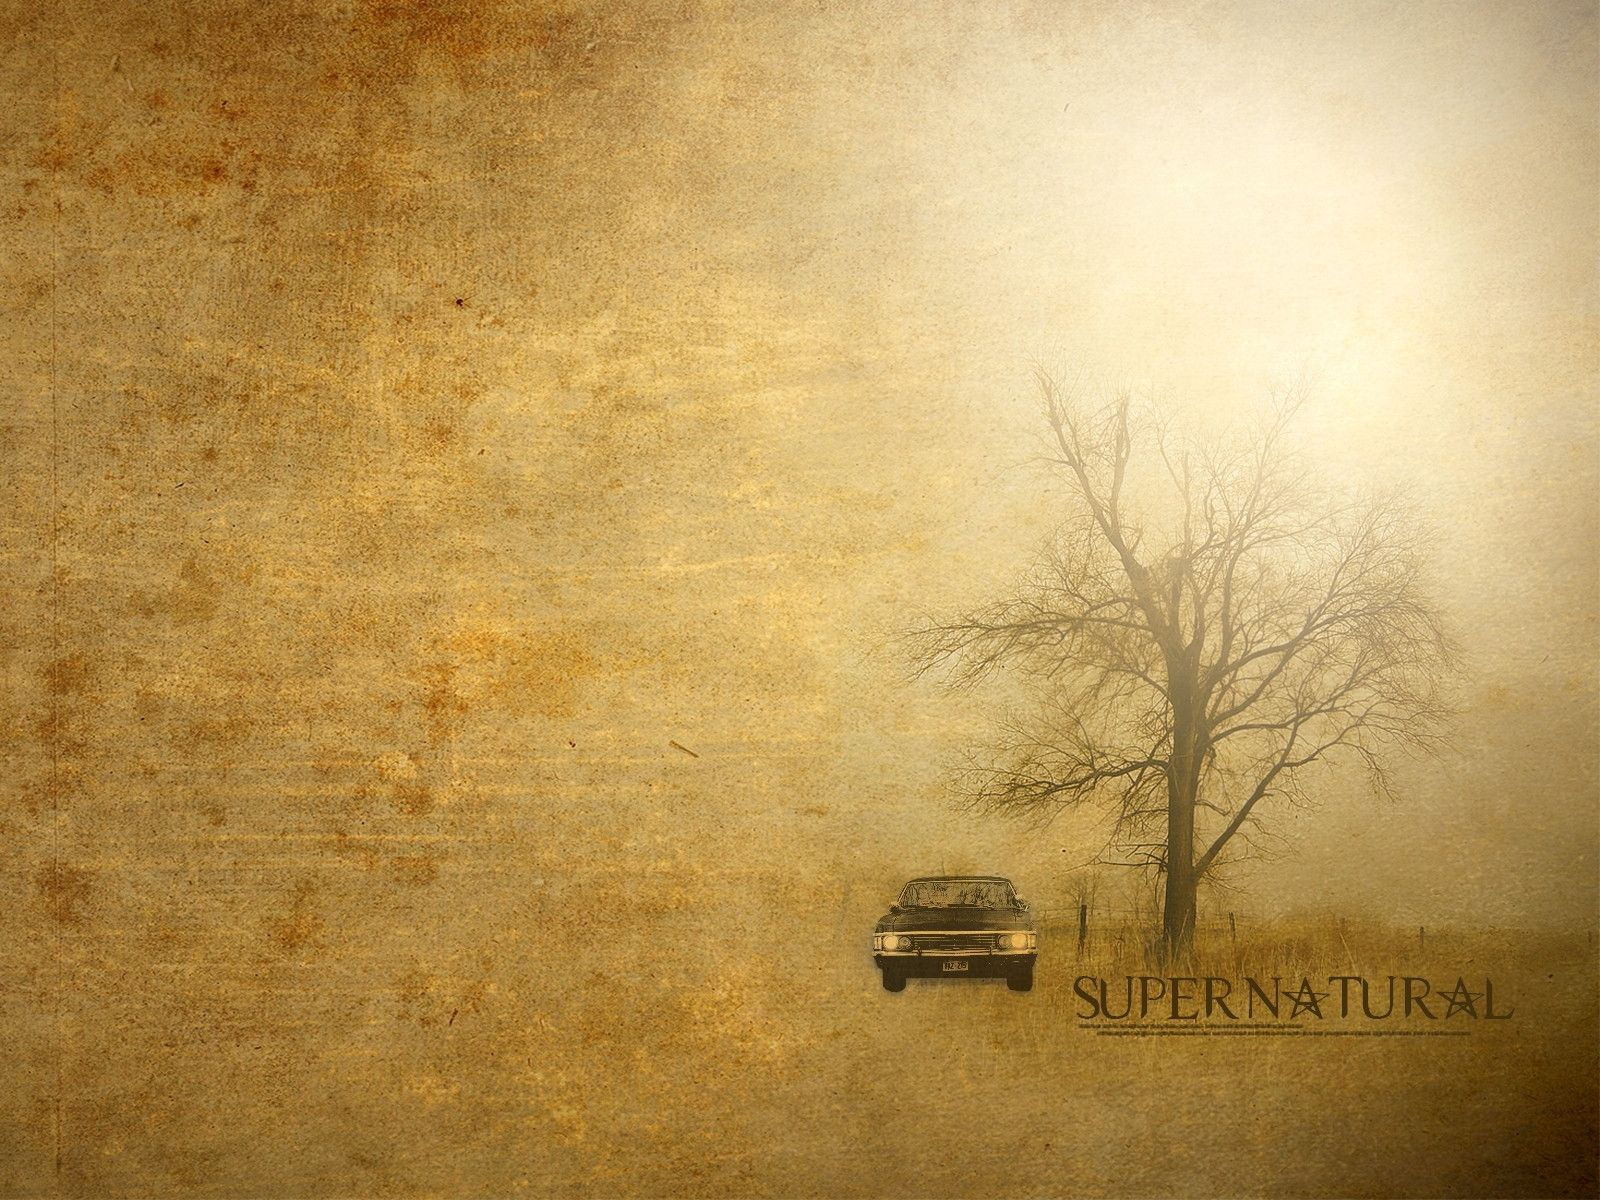 Best-ideas-about-Supernatural-on-Pinterest-1920%C3%971080-Supernatural-wallpaper-wp3603268